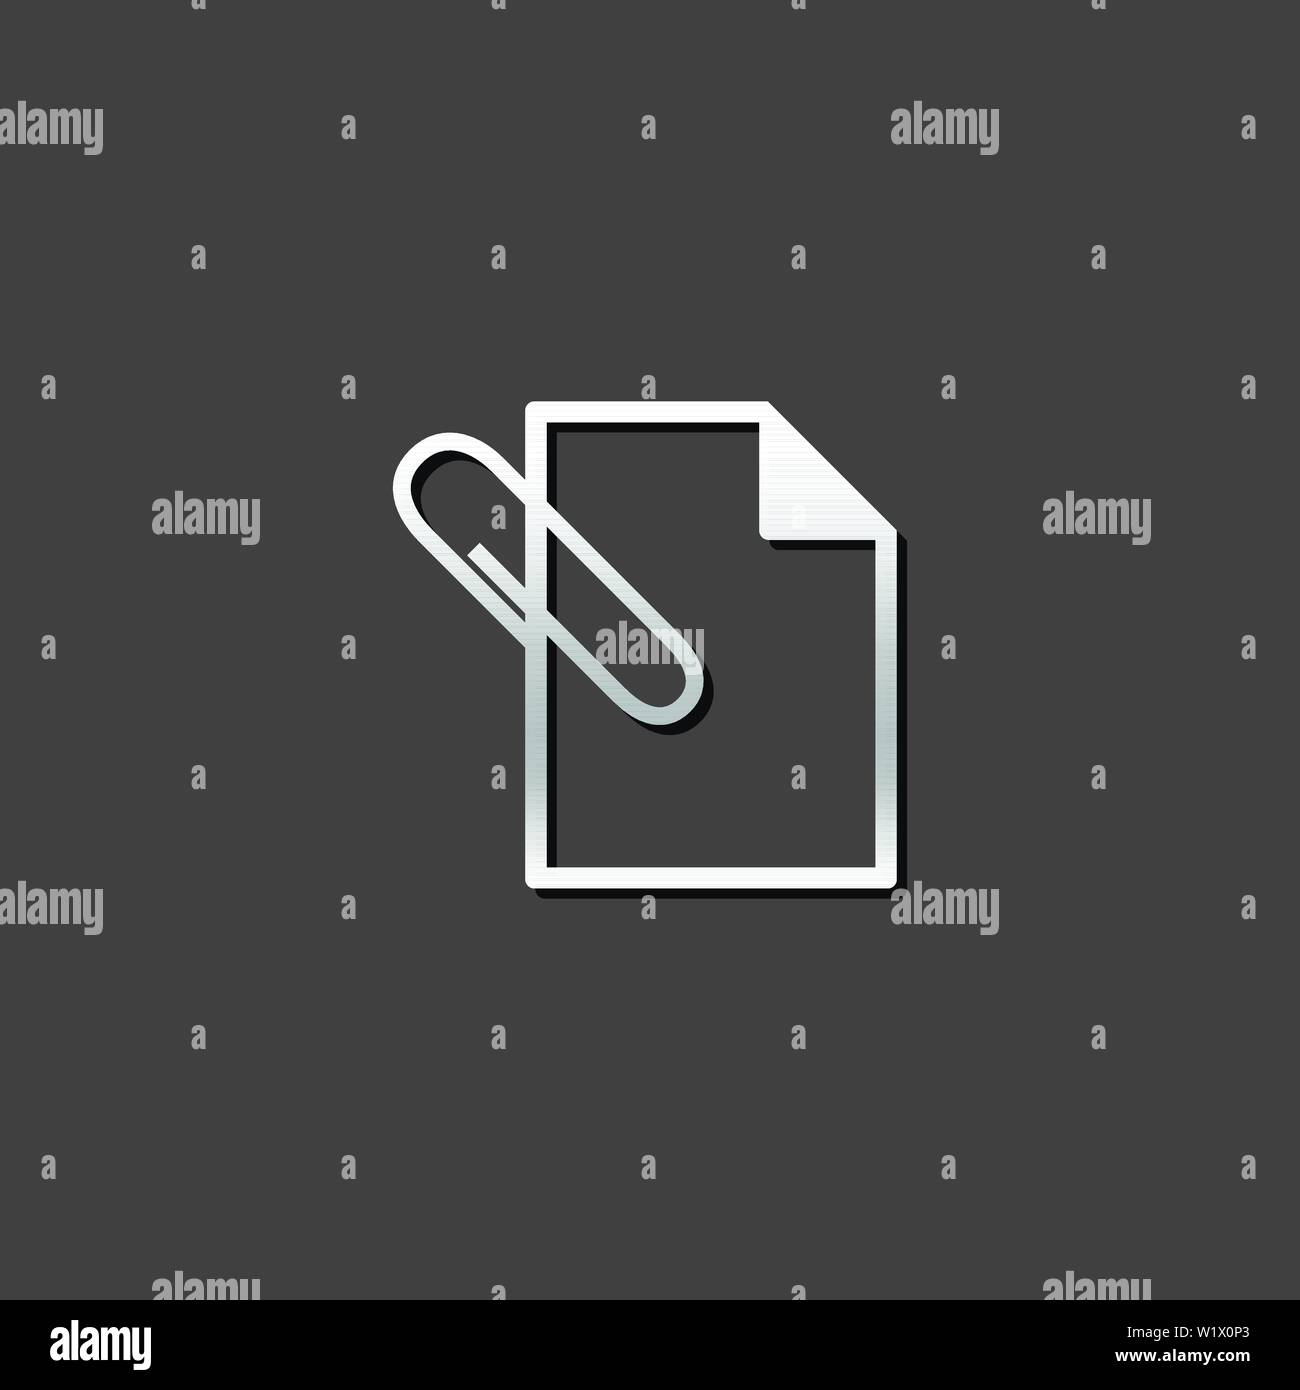 Appendix Black and White Stock Photos & Images - Alamy